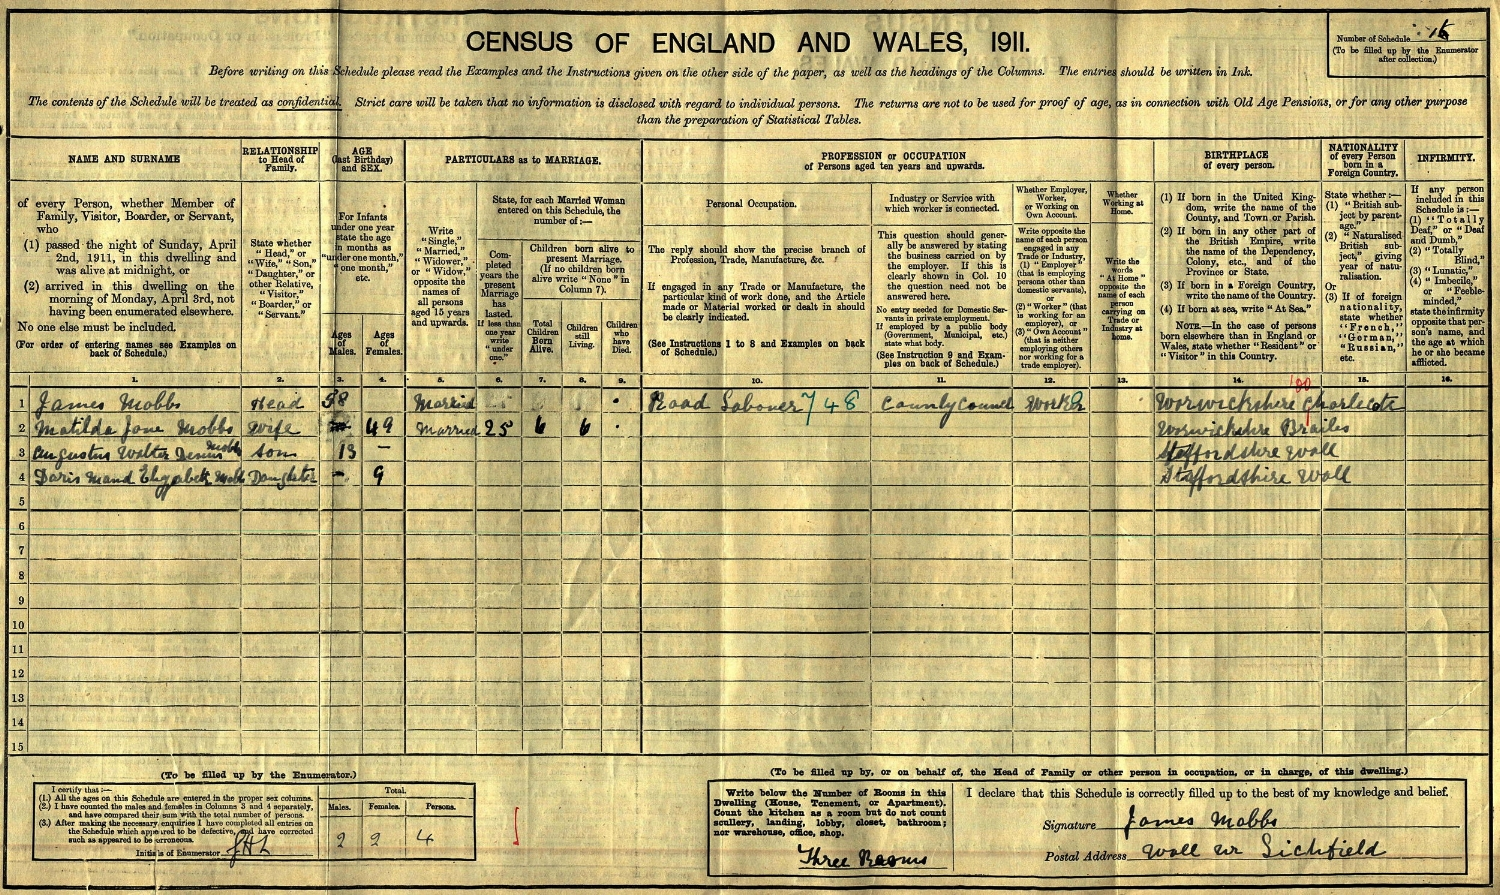 Extract from the 1911 census for the family of Walter Mobbs